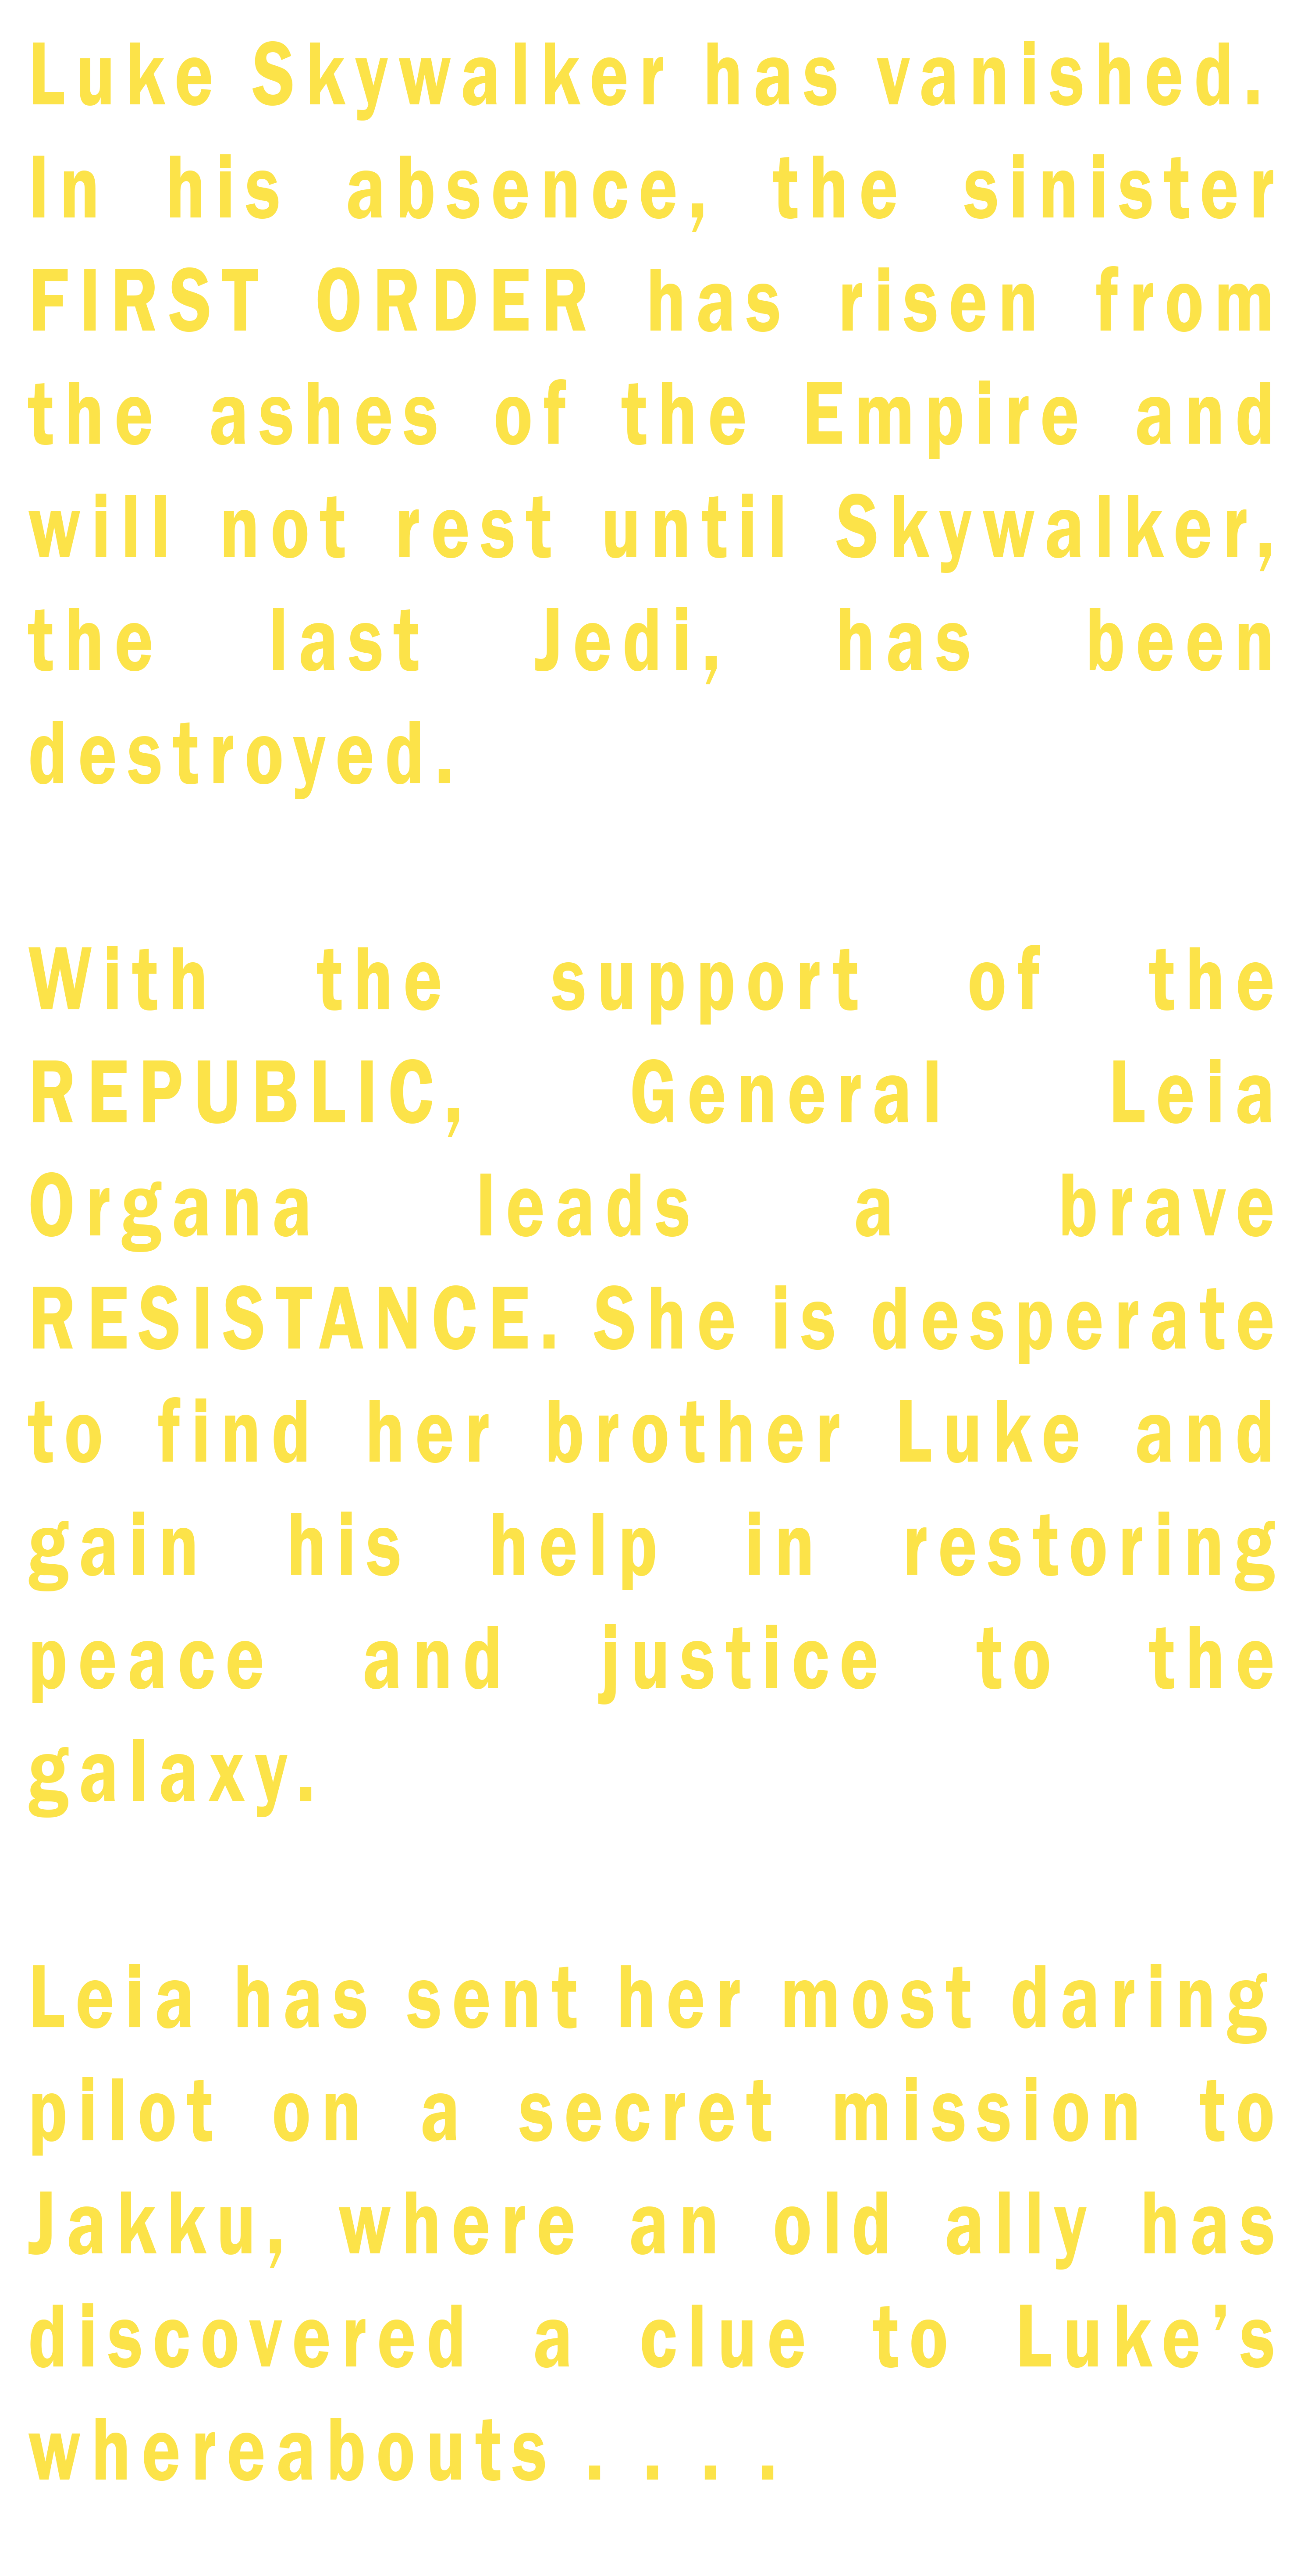 Star Wars 7 The Force Awakens Crawl Text by likeonions on DeviantArt